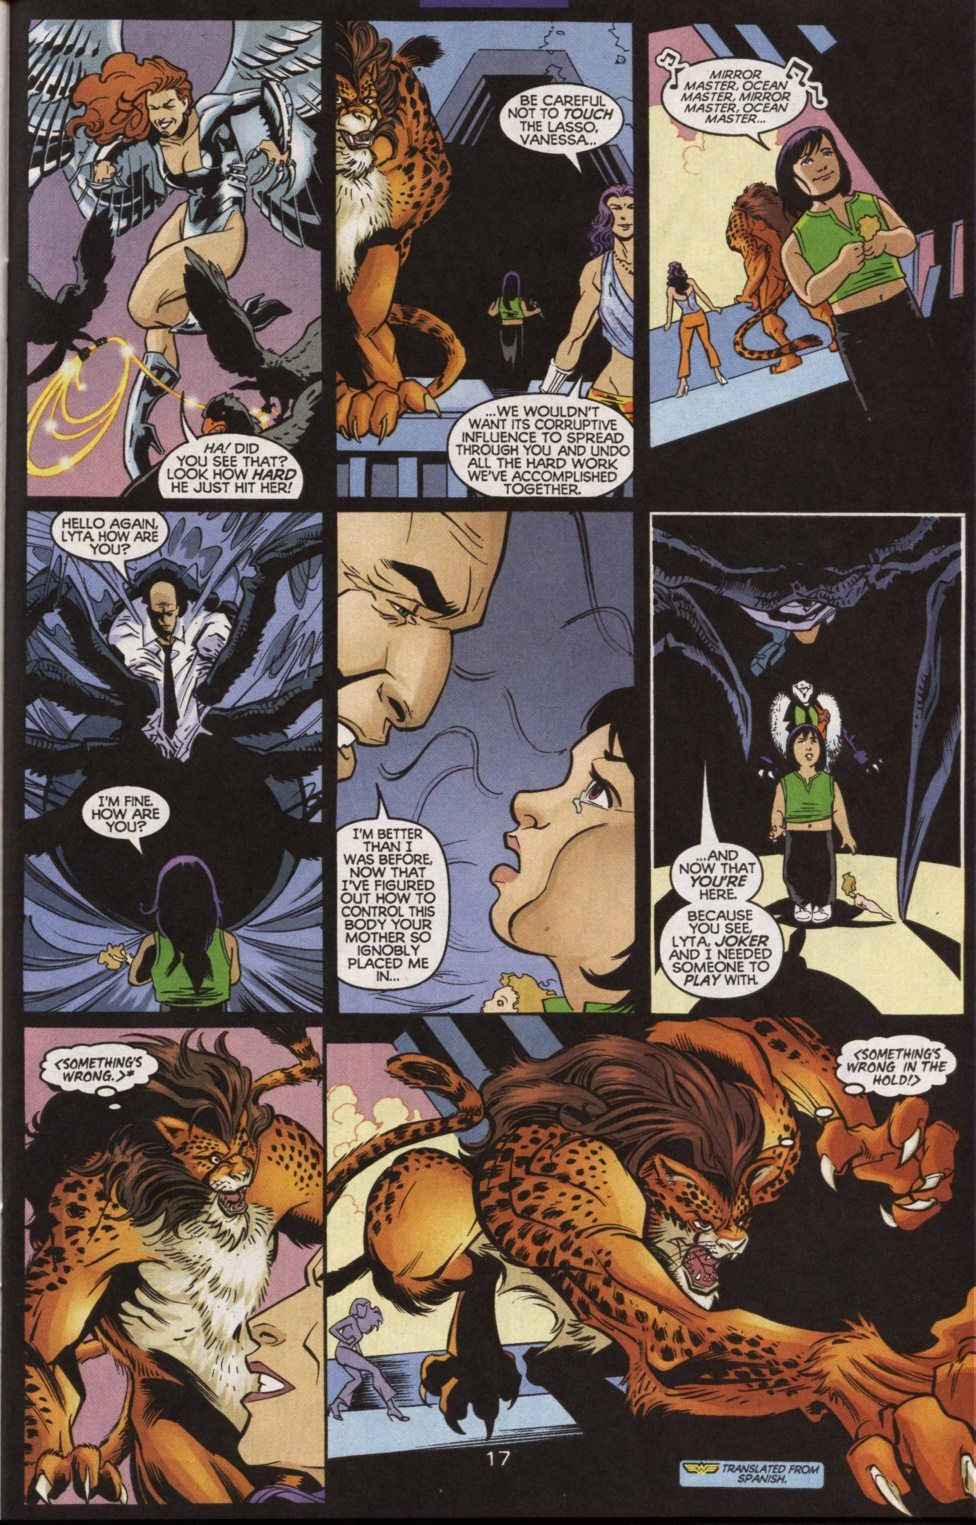 wonder woman_175_17_LexLuthorSpider.jpg